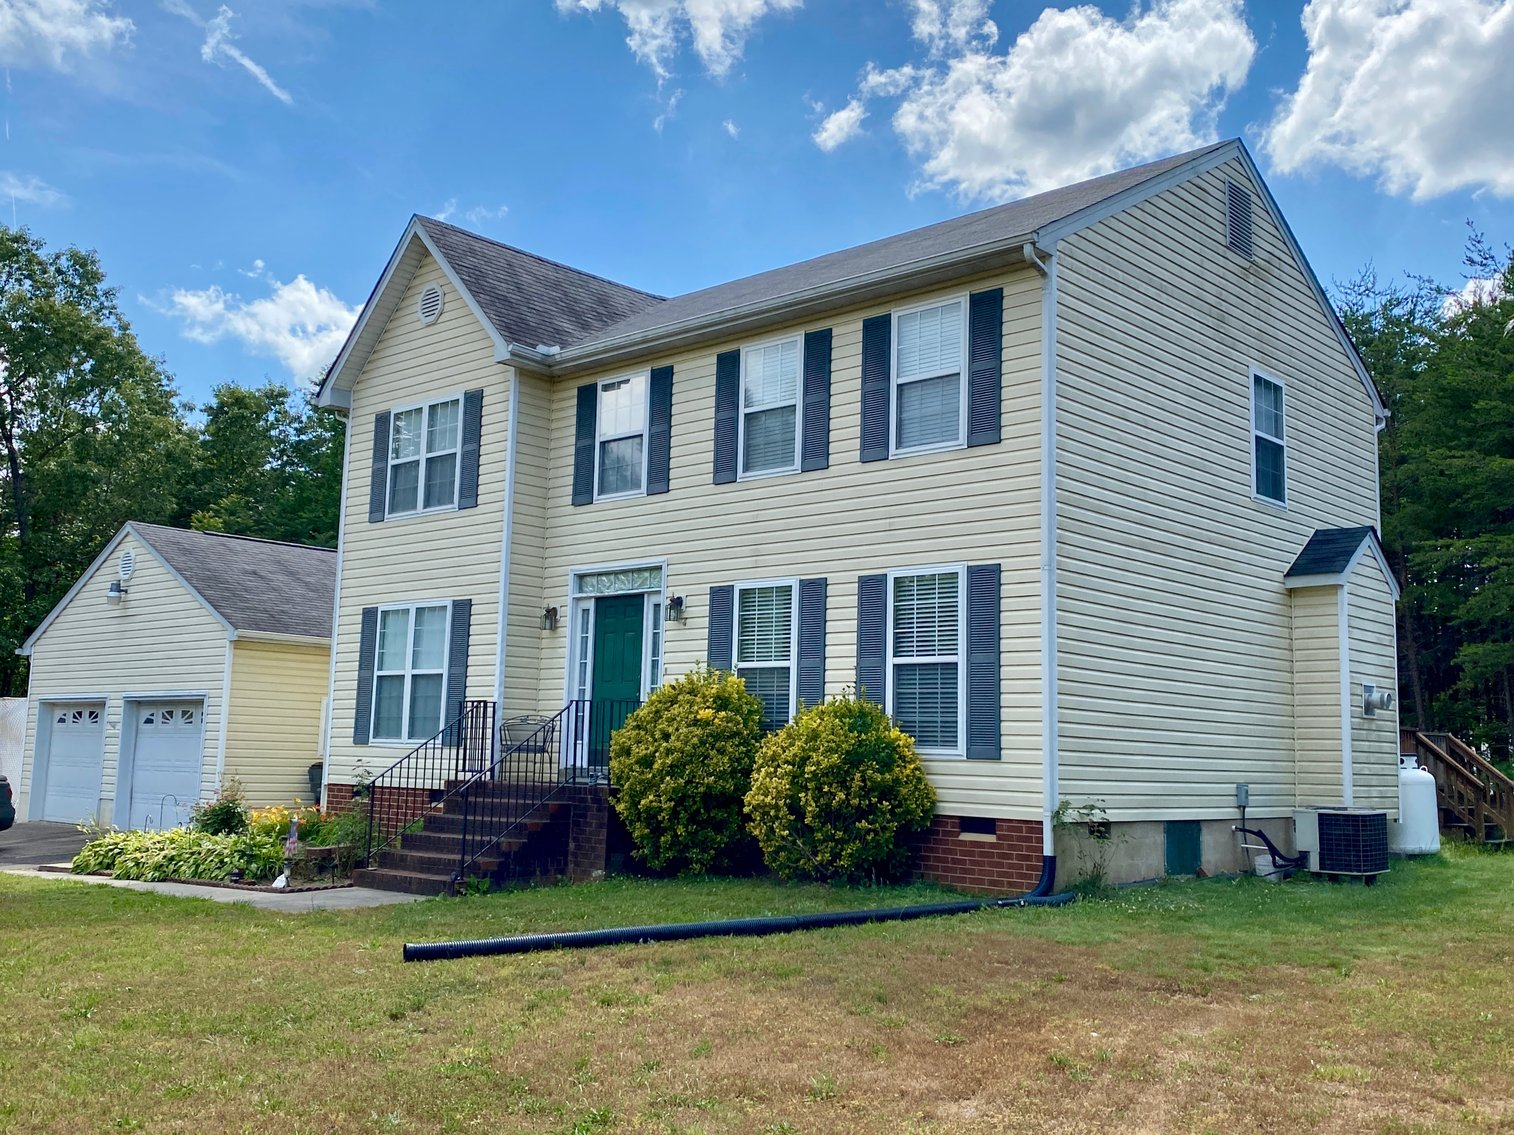 Image for 3 BR/2.5 BA Home on 4.5 +/- Acres in Fluvanna County, VA--Minutes from Zion Crossroads & I-64